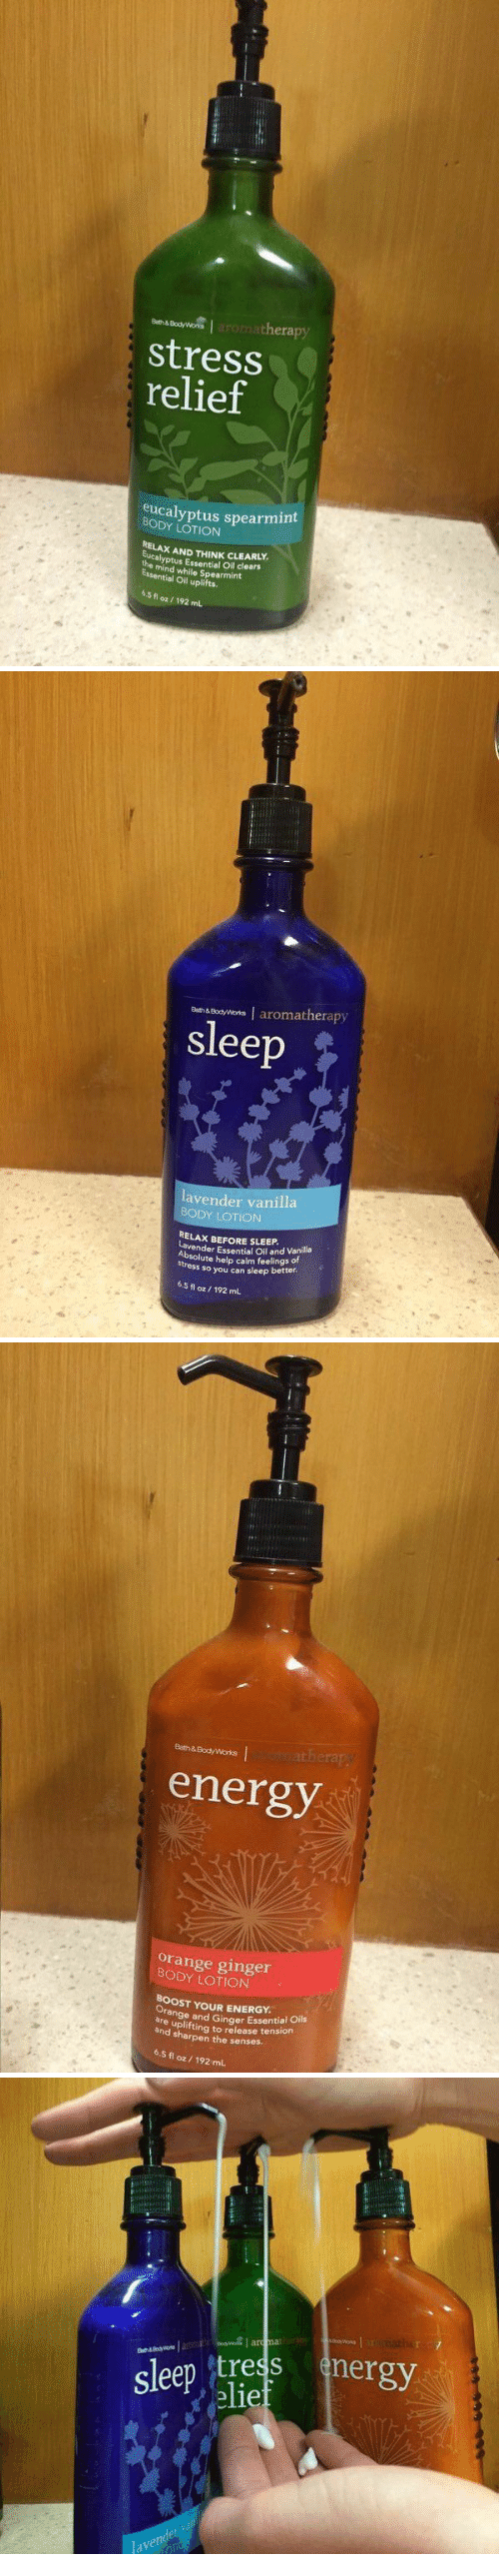 sharpen: Bath&Body Wona  aat thera  Stress  relief  eucalyptus spearmint  LOTION  RELAx AND yptus Essential clears  Essential while Spearmint  oil uplifts.  5.5 oz/ mL  fl 192  Body wons I aromatherapy  Bath&  sleep  lavender vanilla  BODY LOTION  RELAx BEFORE SLEEP.  vende  Essential oil and Vanilla  Absolute help calm feelings of  stress so you can sleep better.  6.5 fl oz 192 mL   Bath&Body Works  energy  orange ginger  LOTION  BooST YOUR ENERGY.  ran  9e and G  are Essential oils  and sharpen to release tension  the senses.  6.5 oz 192 mL  fl  sleep tress  nergy  elief  laven